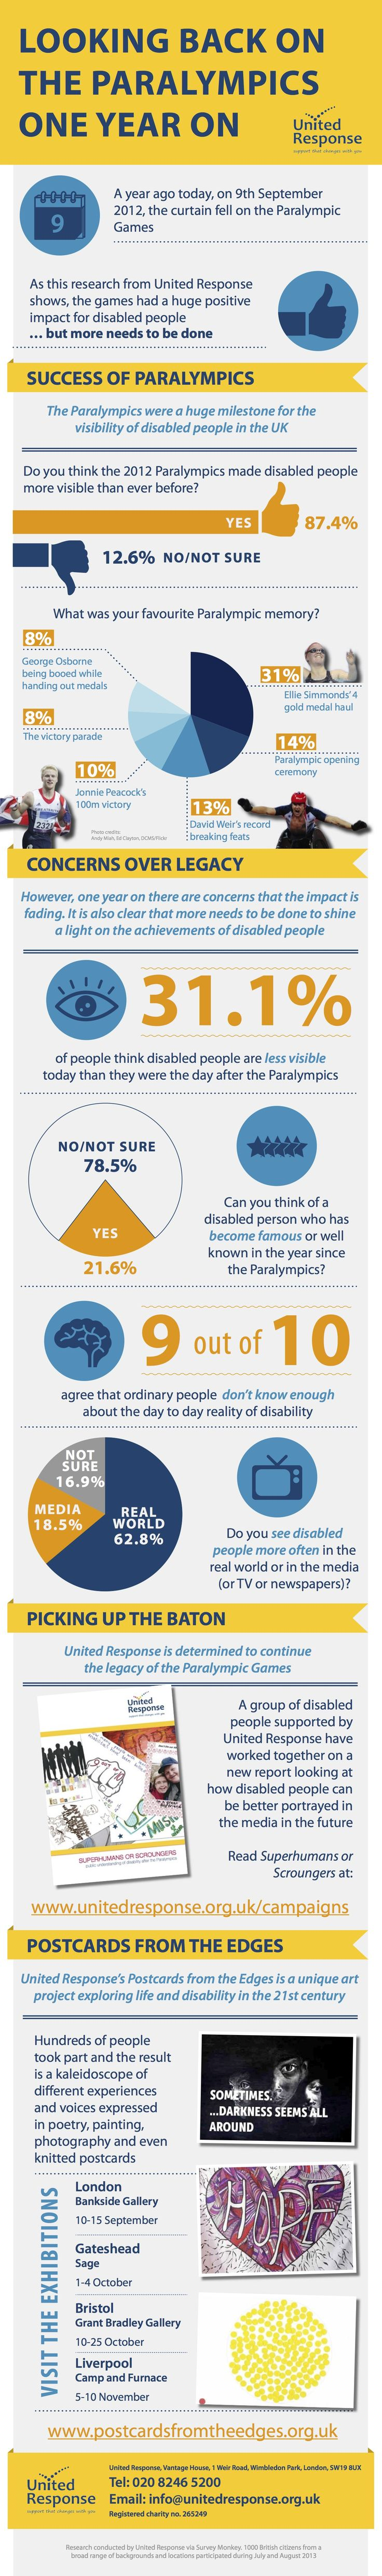 Looking back on the Paralympics one year on - Infographic includes findings from our survey.